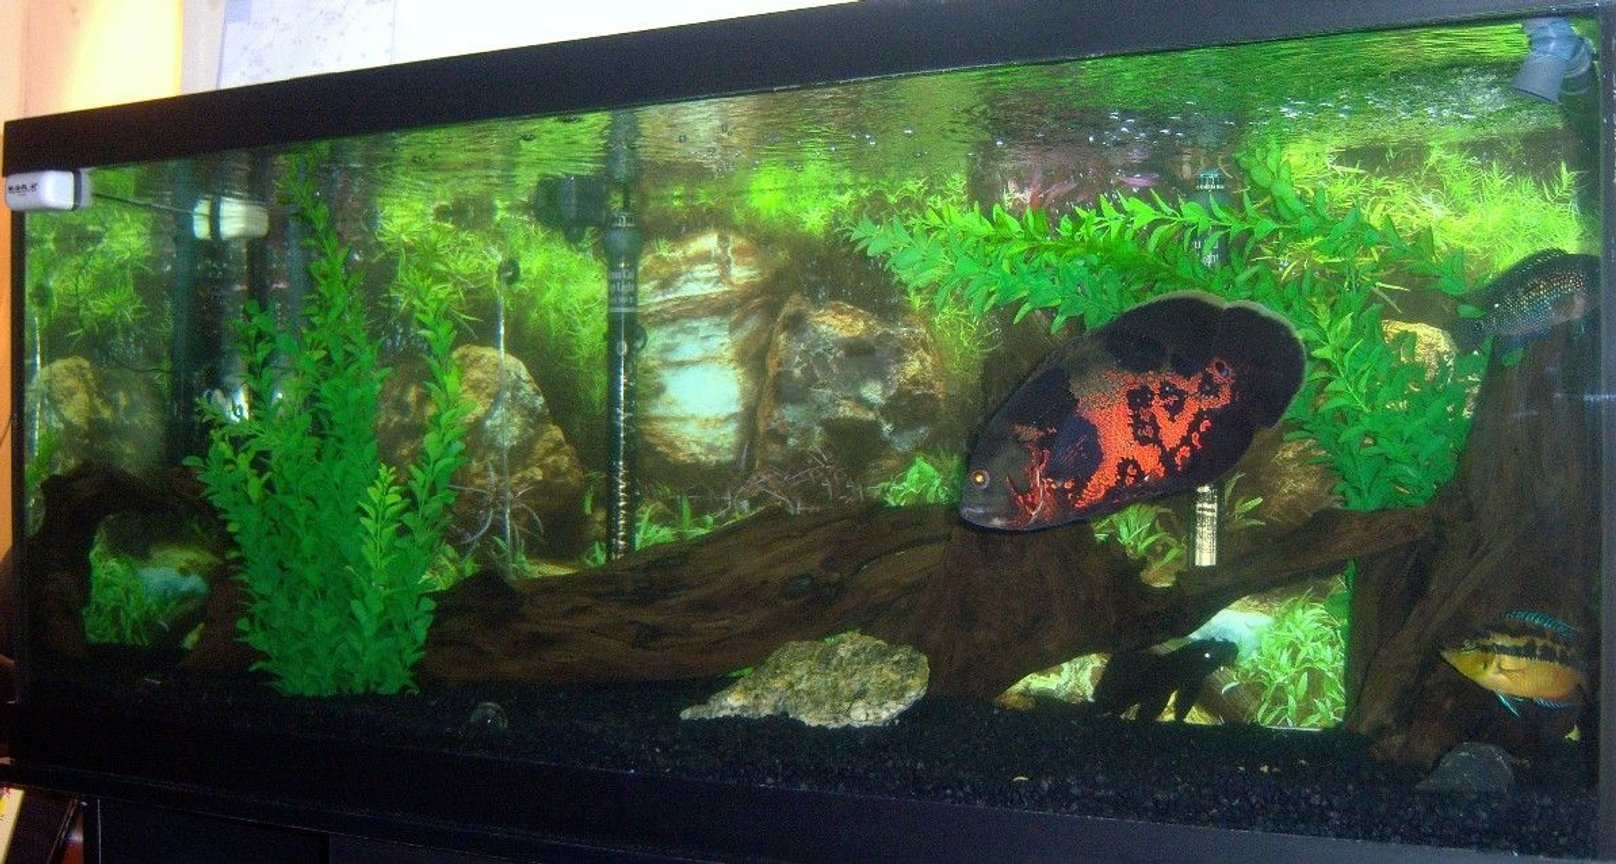 75 gallons freshwater fish tank (mostly fish and non-living decorations) - my 75 gallon Tiger Oscar tank